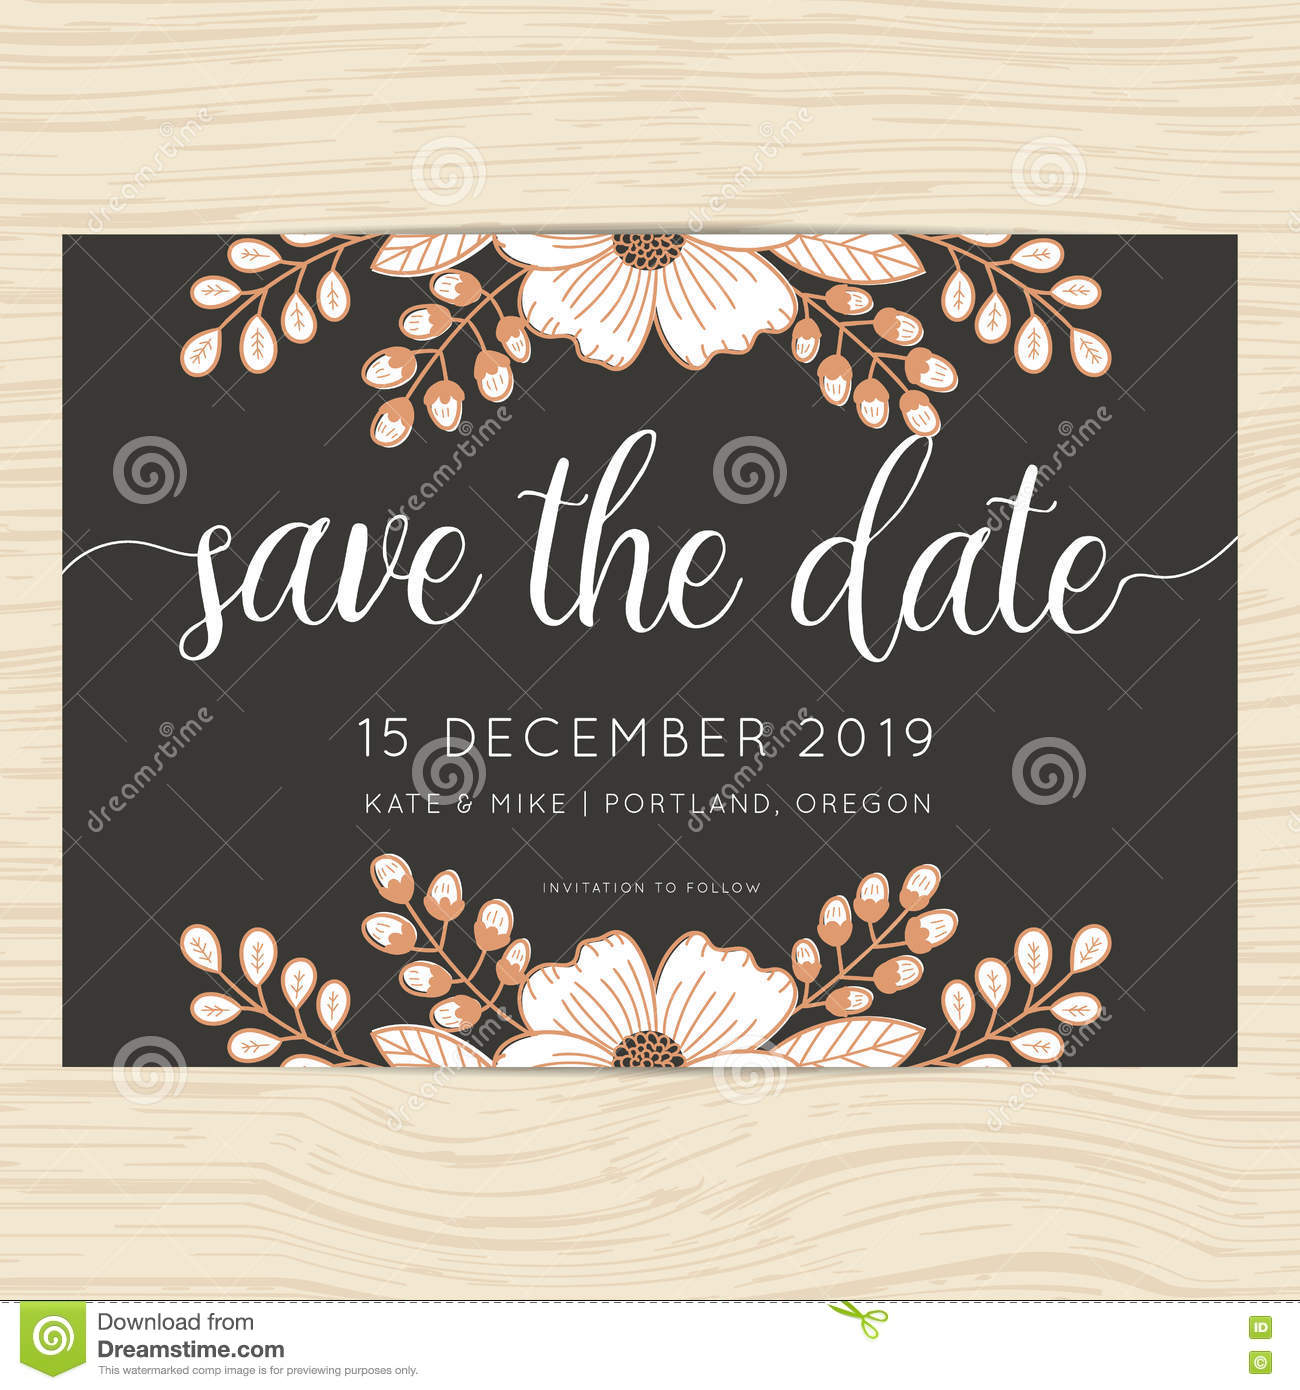 Save The Date Wedding Invitation Card Template With Flower Floral